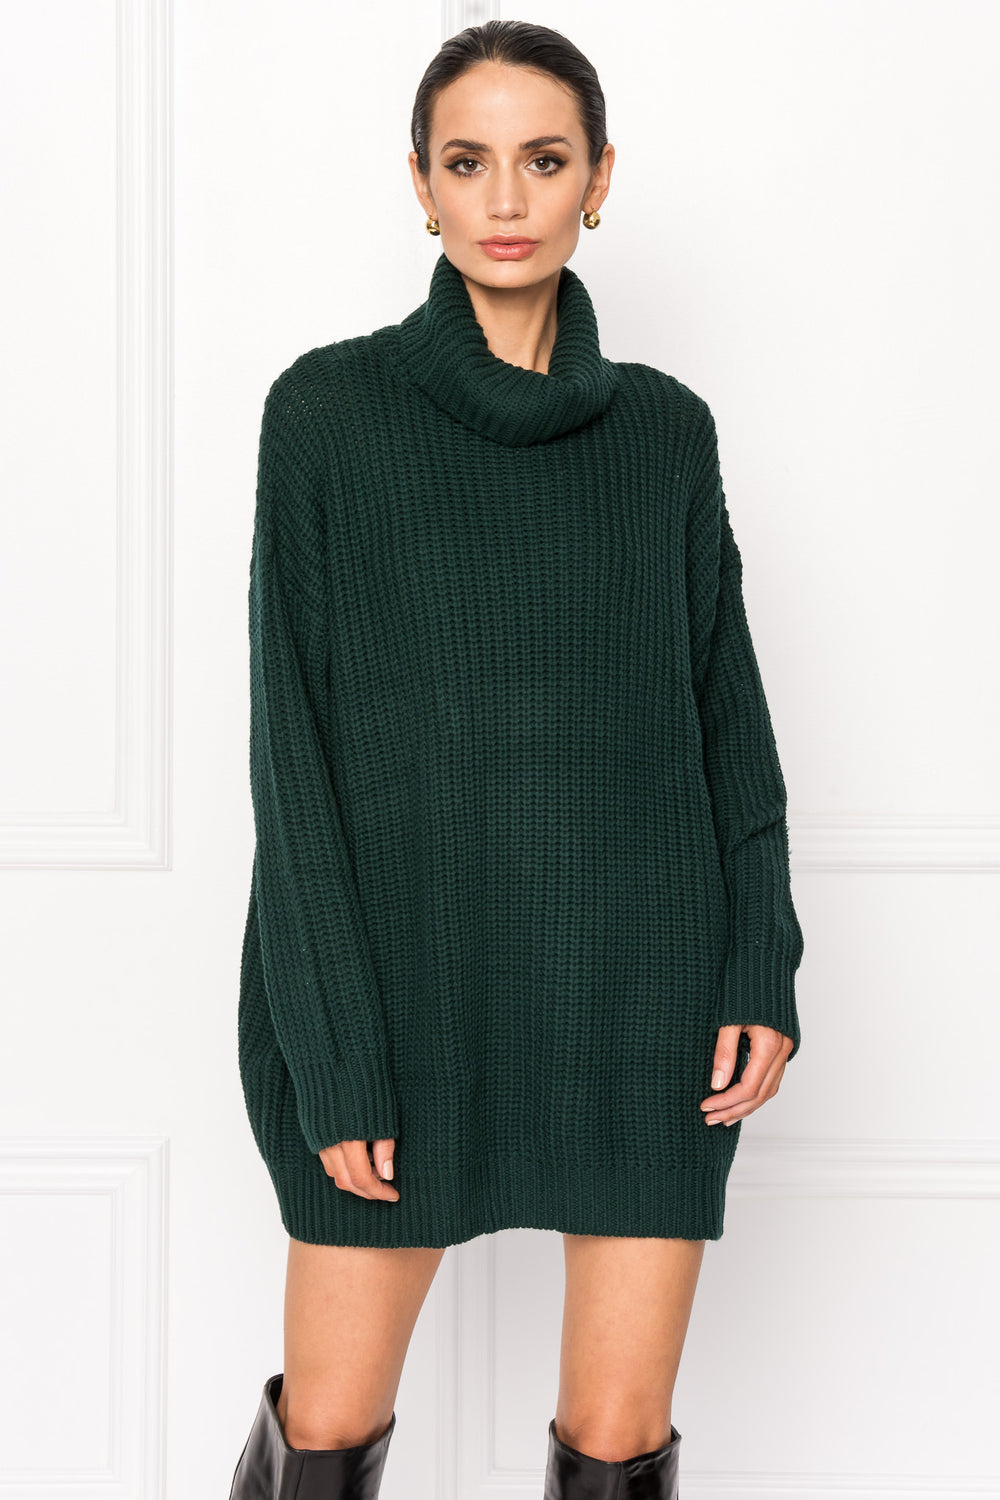 FATE Green Turtleneck Sweater Dress